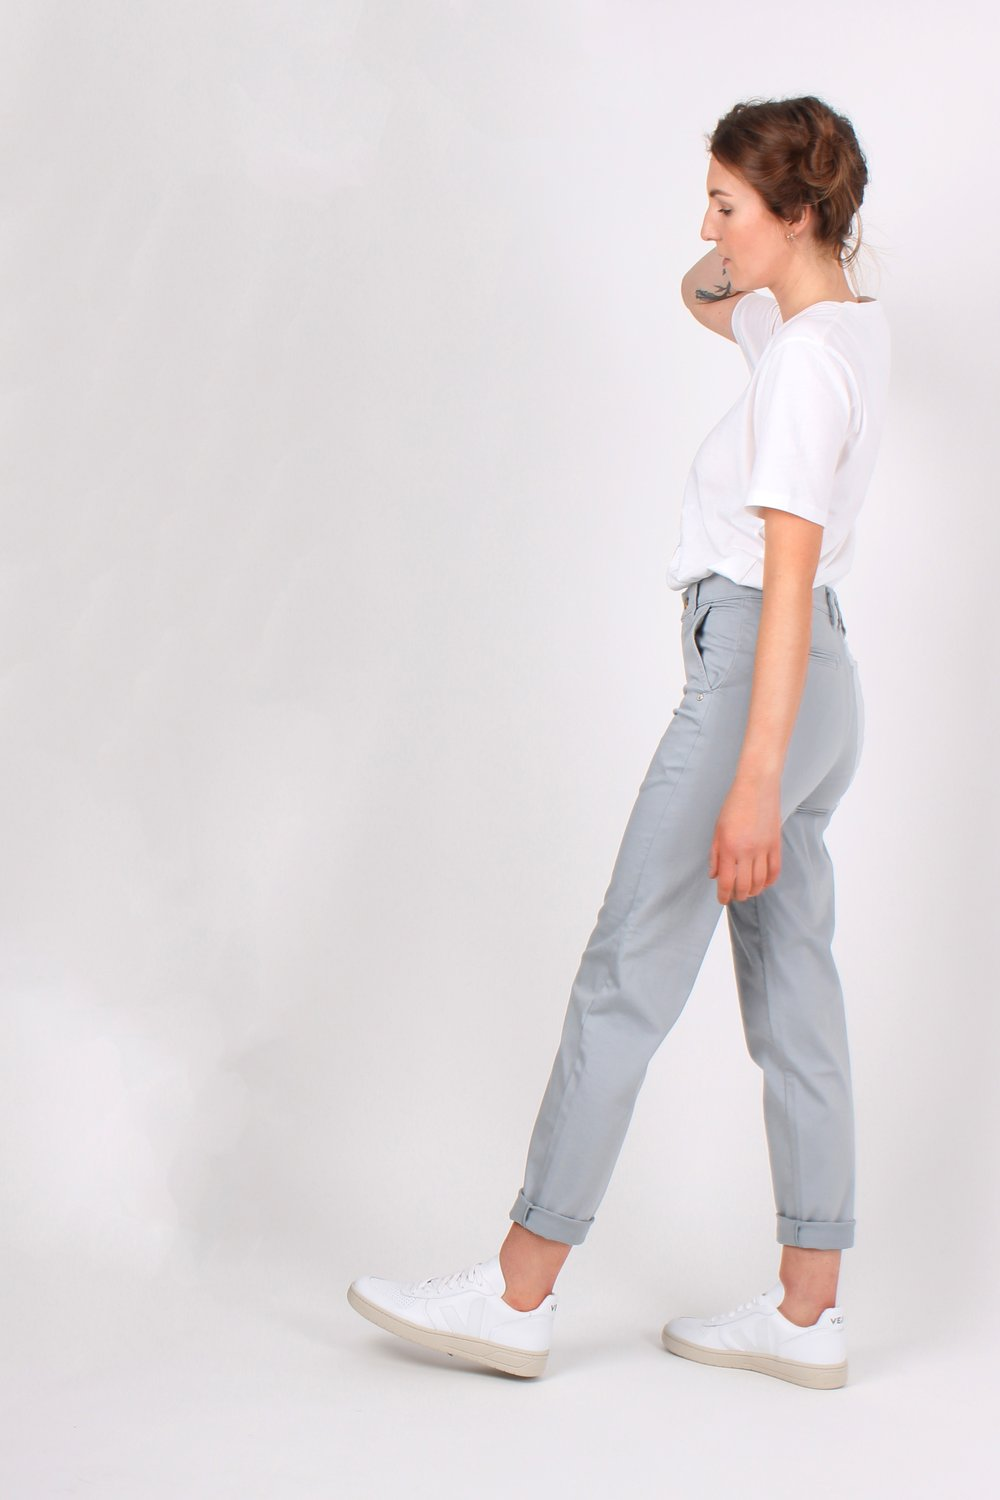 Chic chinos for the girls and guys ;)